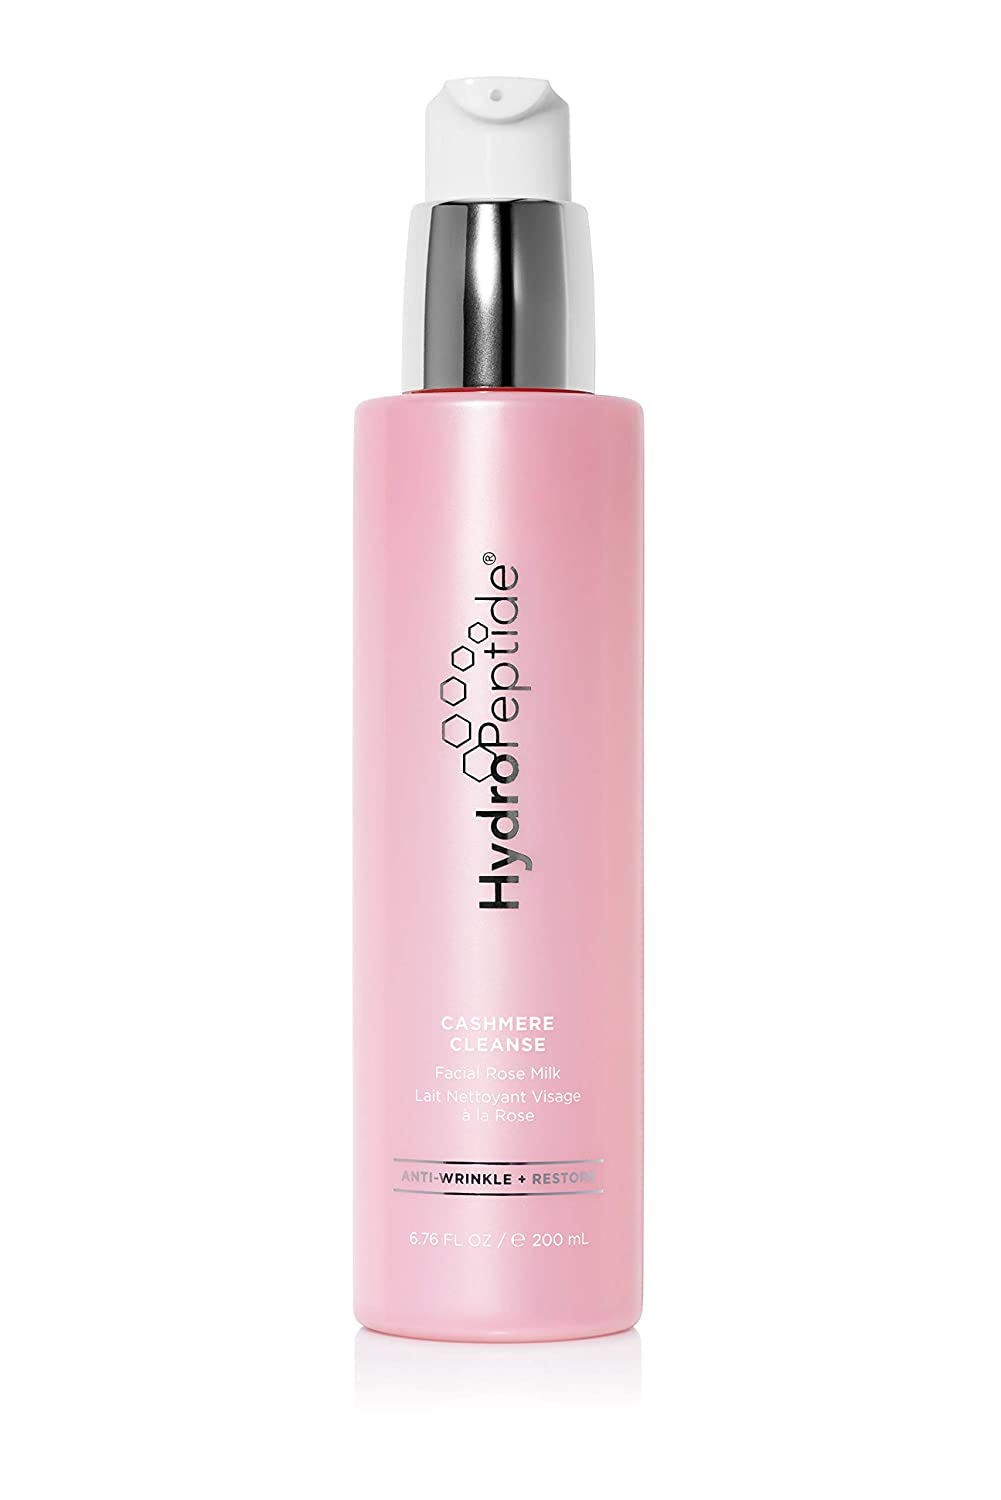 HydroPeptide Cashmere Cleanse NEW before selling Facial Rose Fl Milk Oz 6.76 outlet